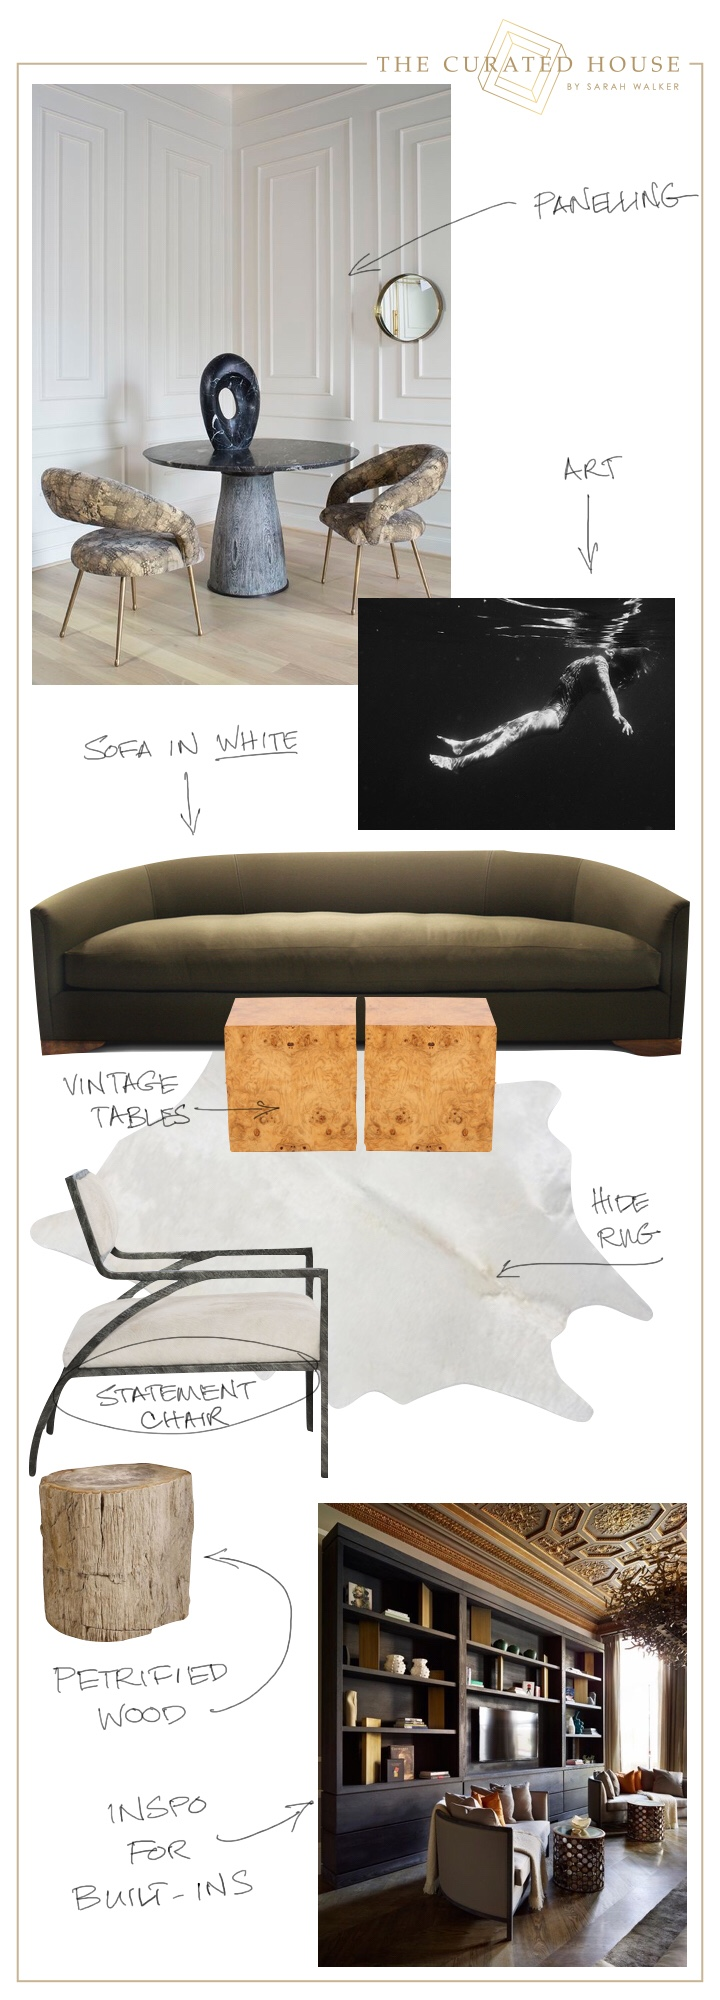 media room mood board*